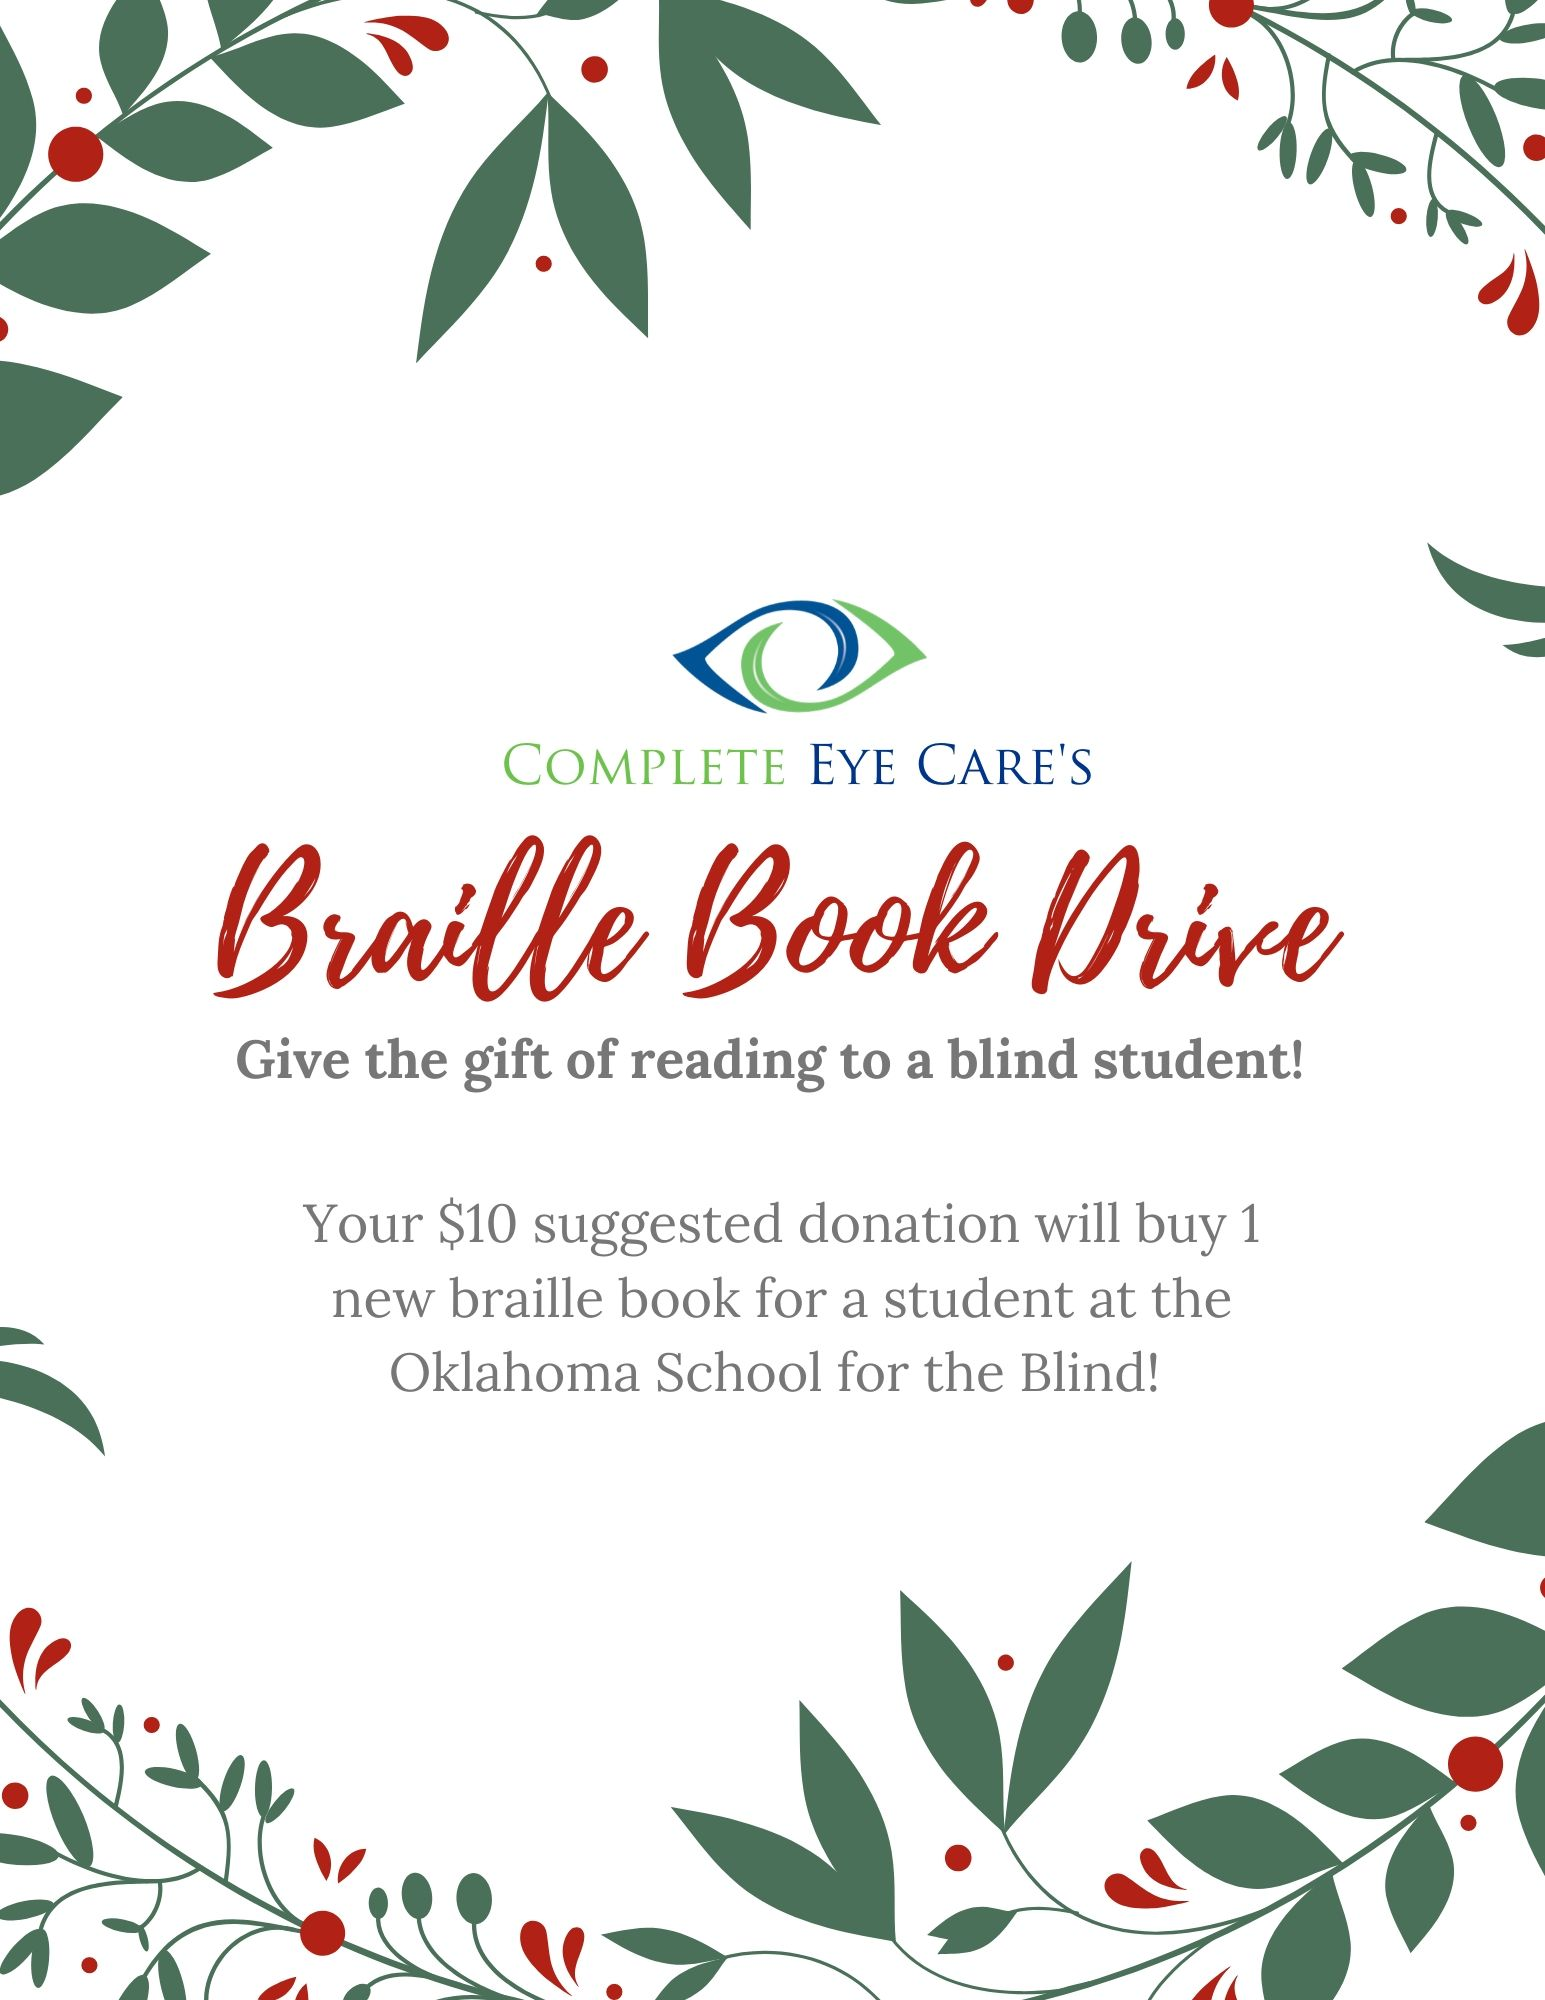 Braille Book Drive